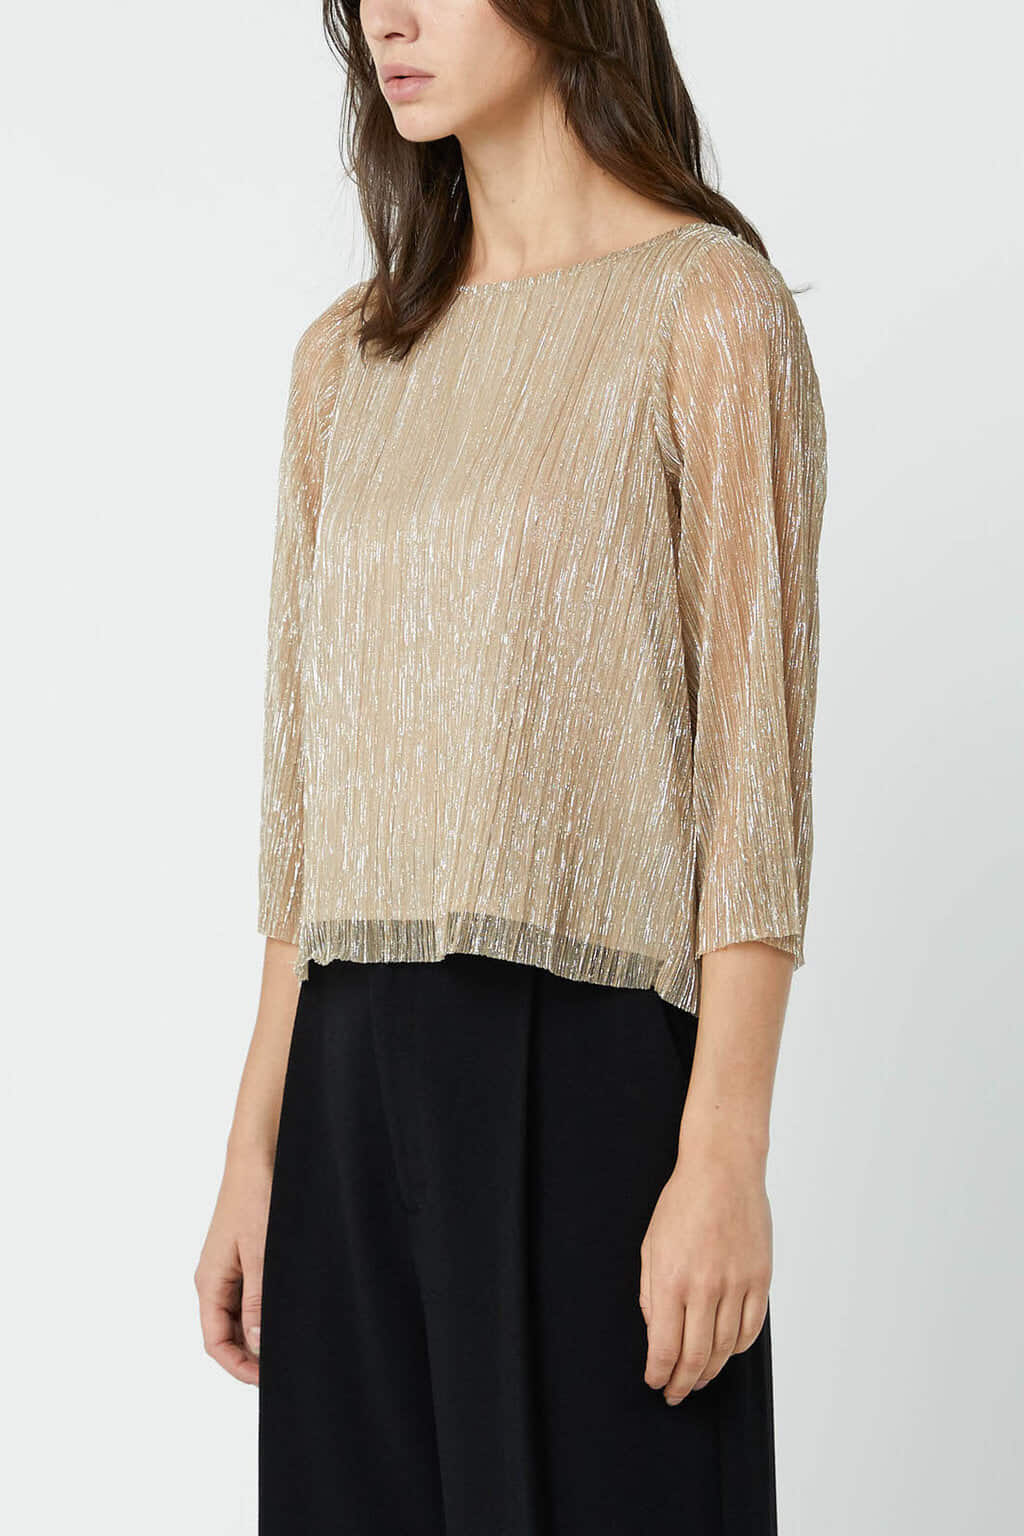 Blouse 2727 Champagne 2